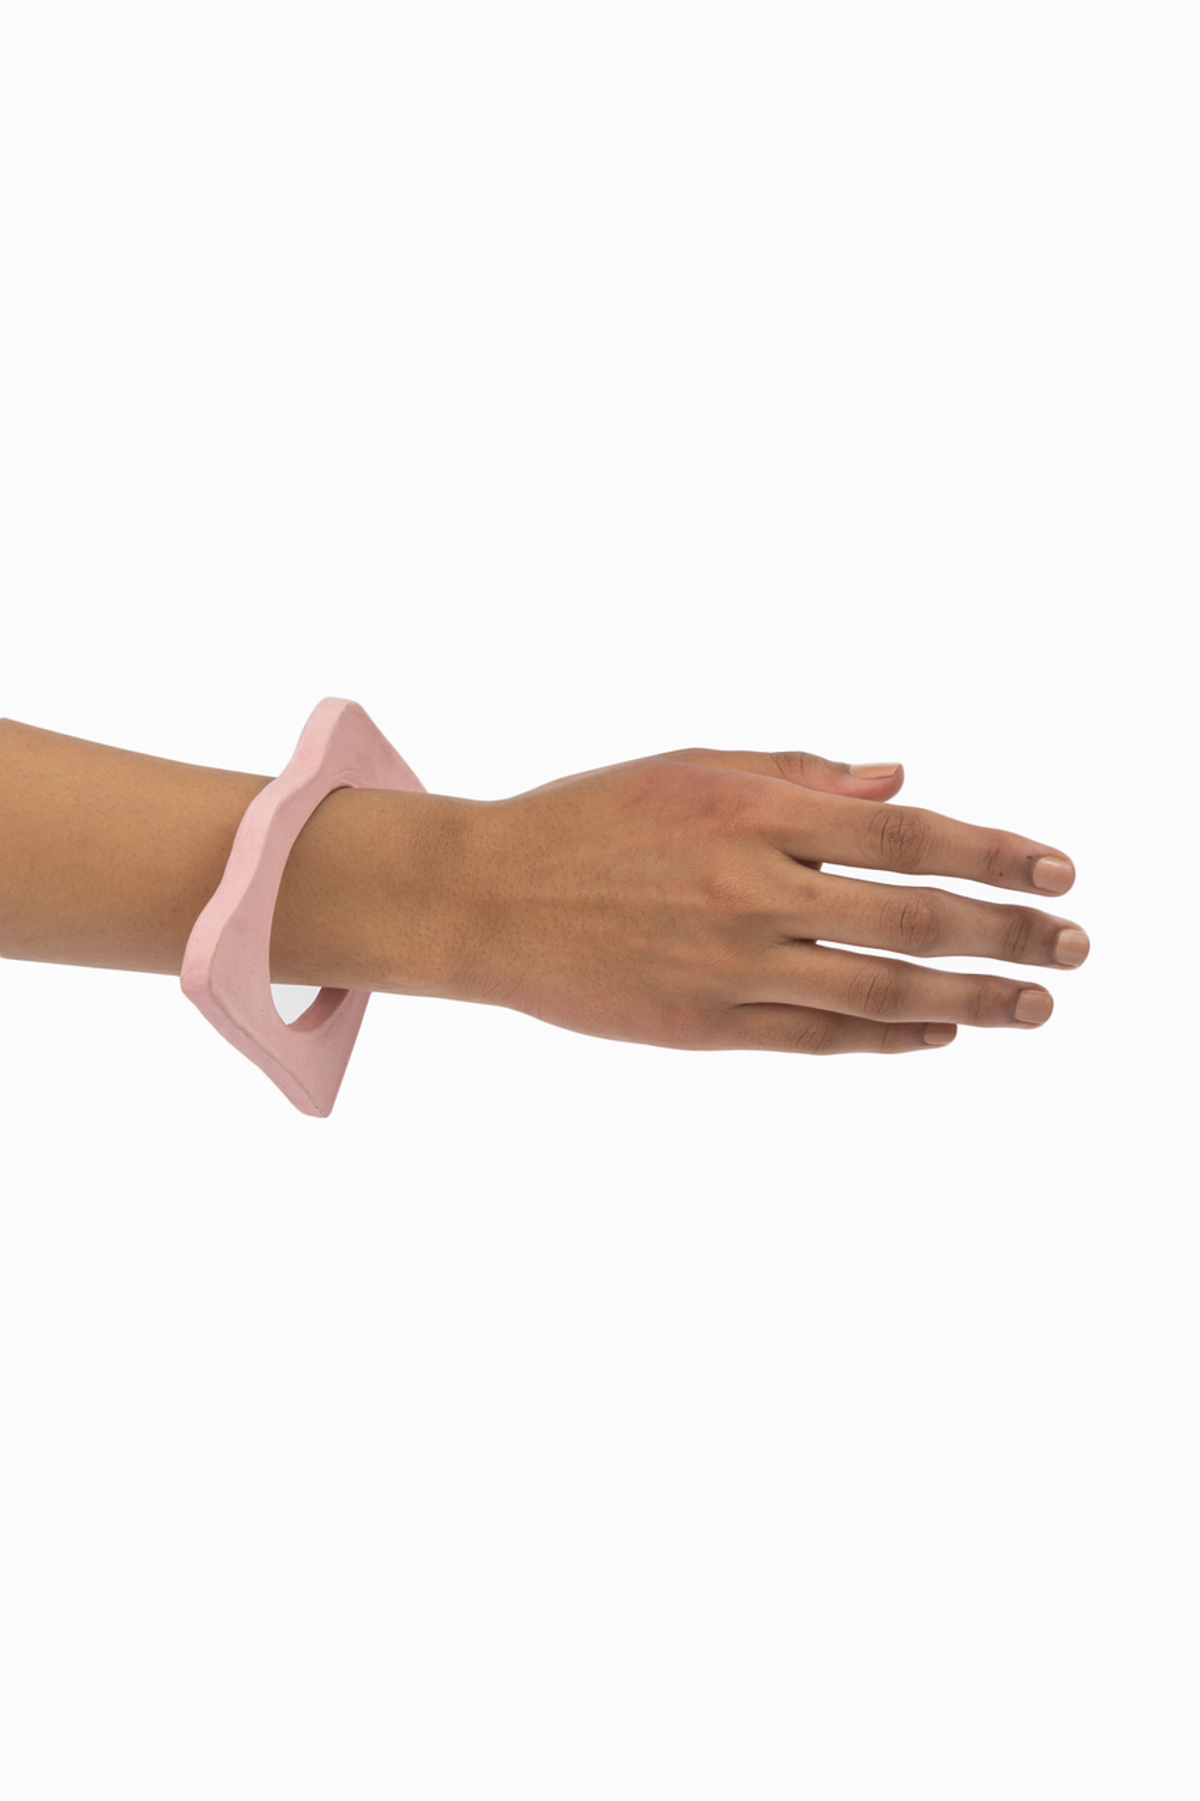 TACTILE MATTER FOR SAINT HERON WAVY BANGLE - PINK